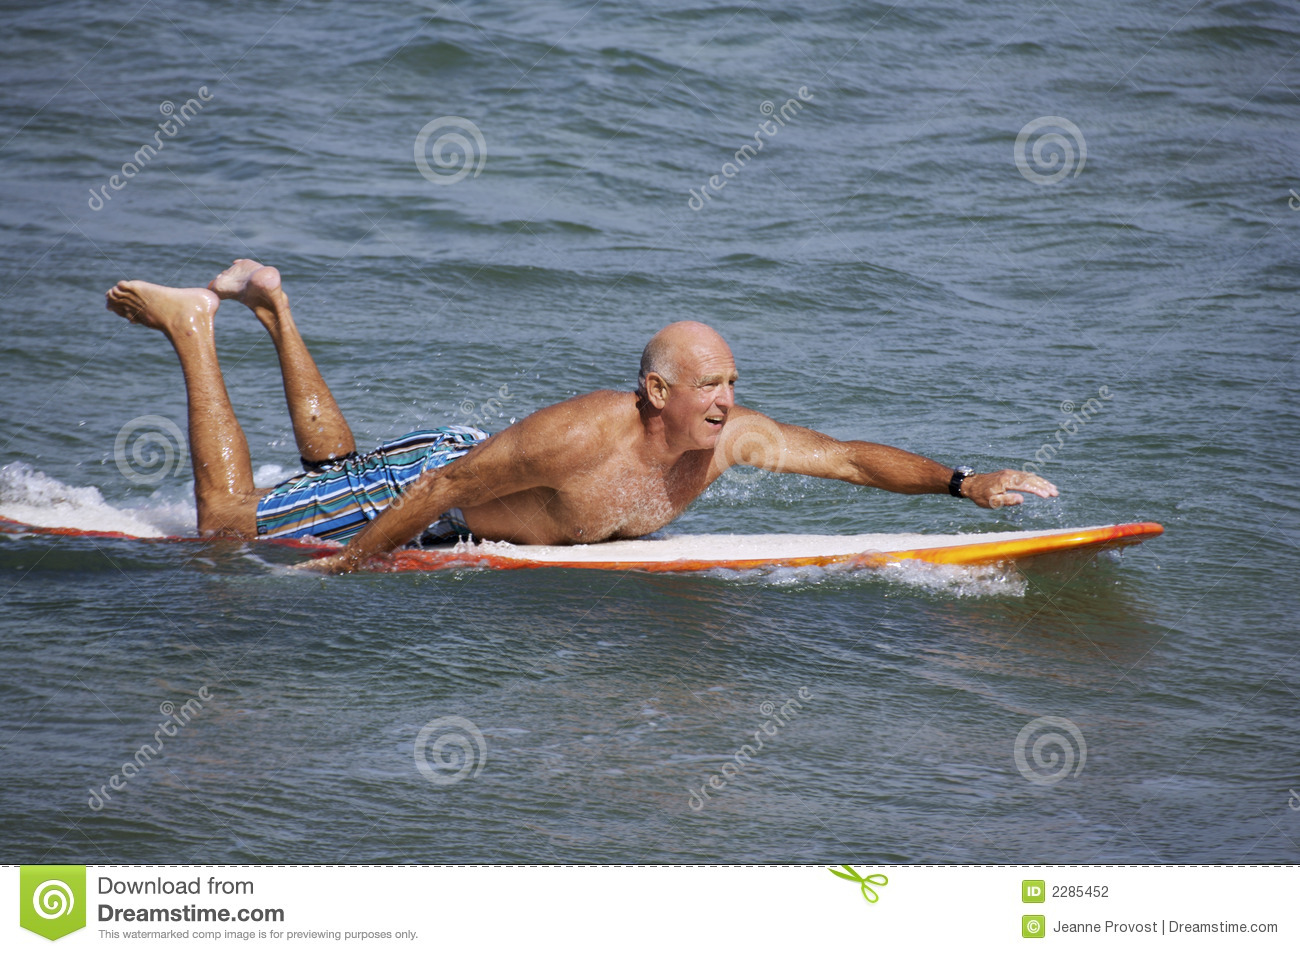 The Thrill of Surfing